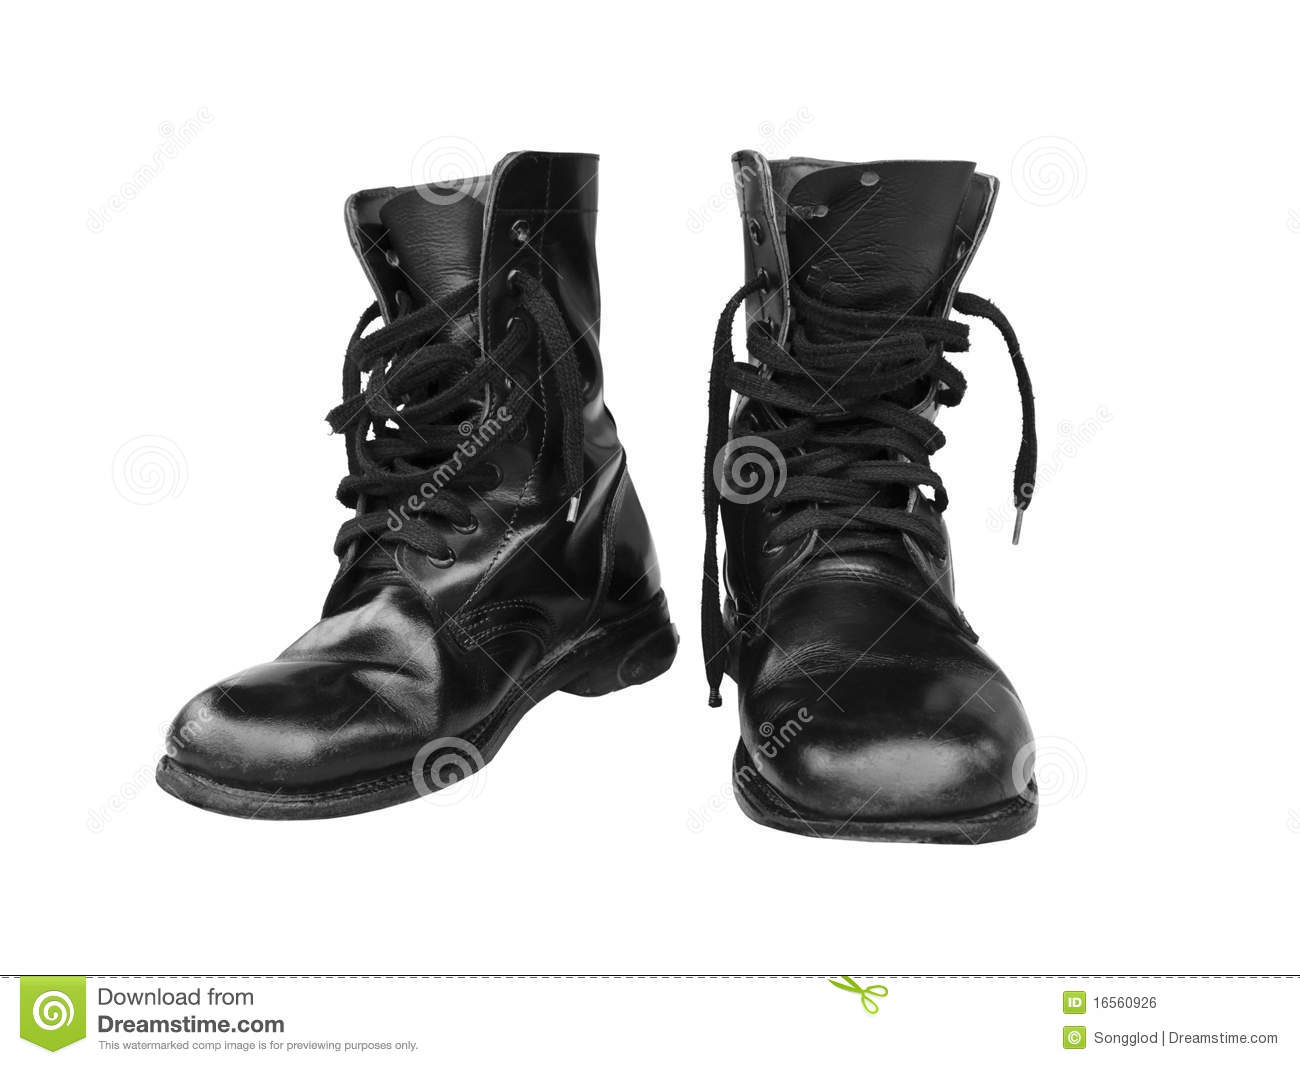 Black Combat Boot Royalty Free Stock Image - Image: 16560926